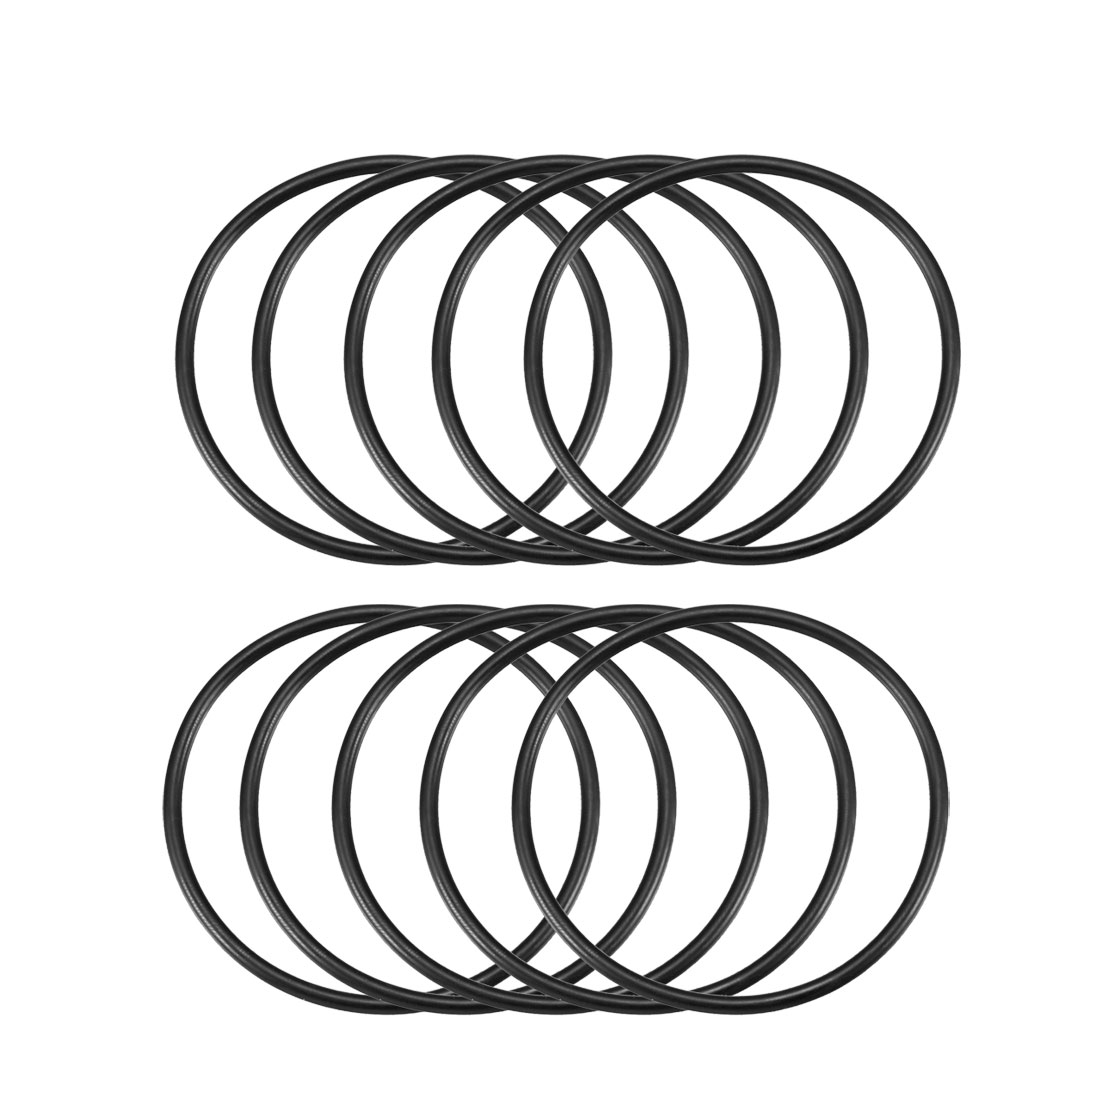 10 x Industrial Rubber O Ring Oil Filter Sealing Gaskets 71mm x 3.1mm